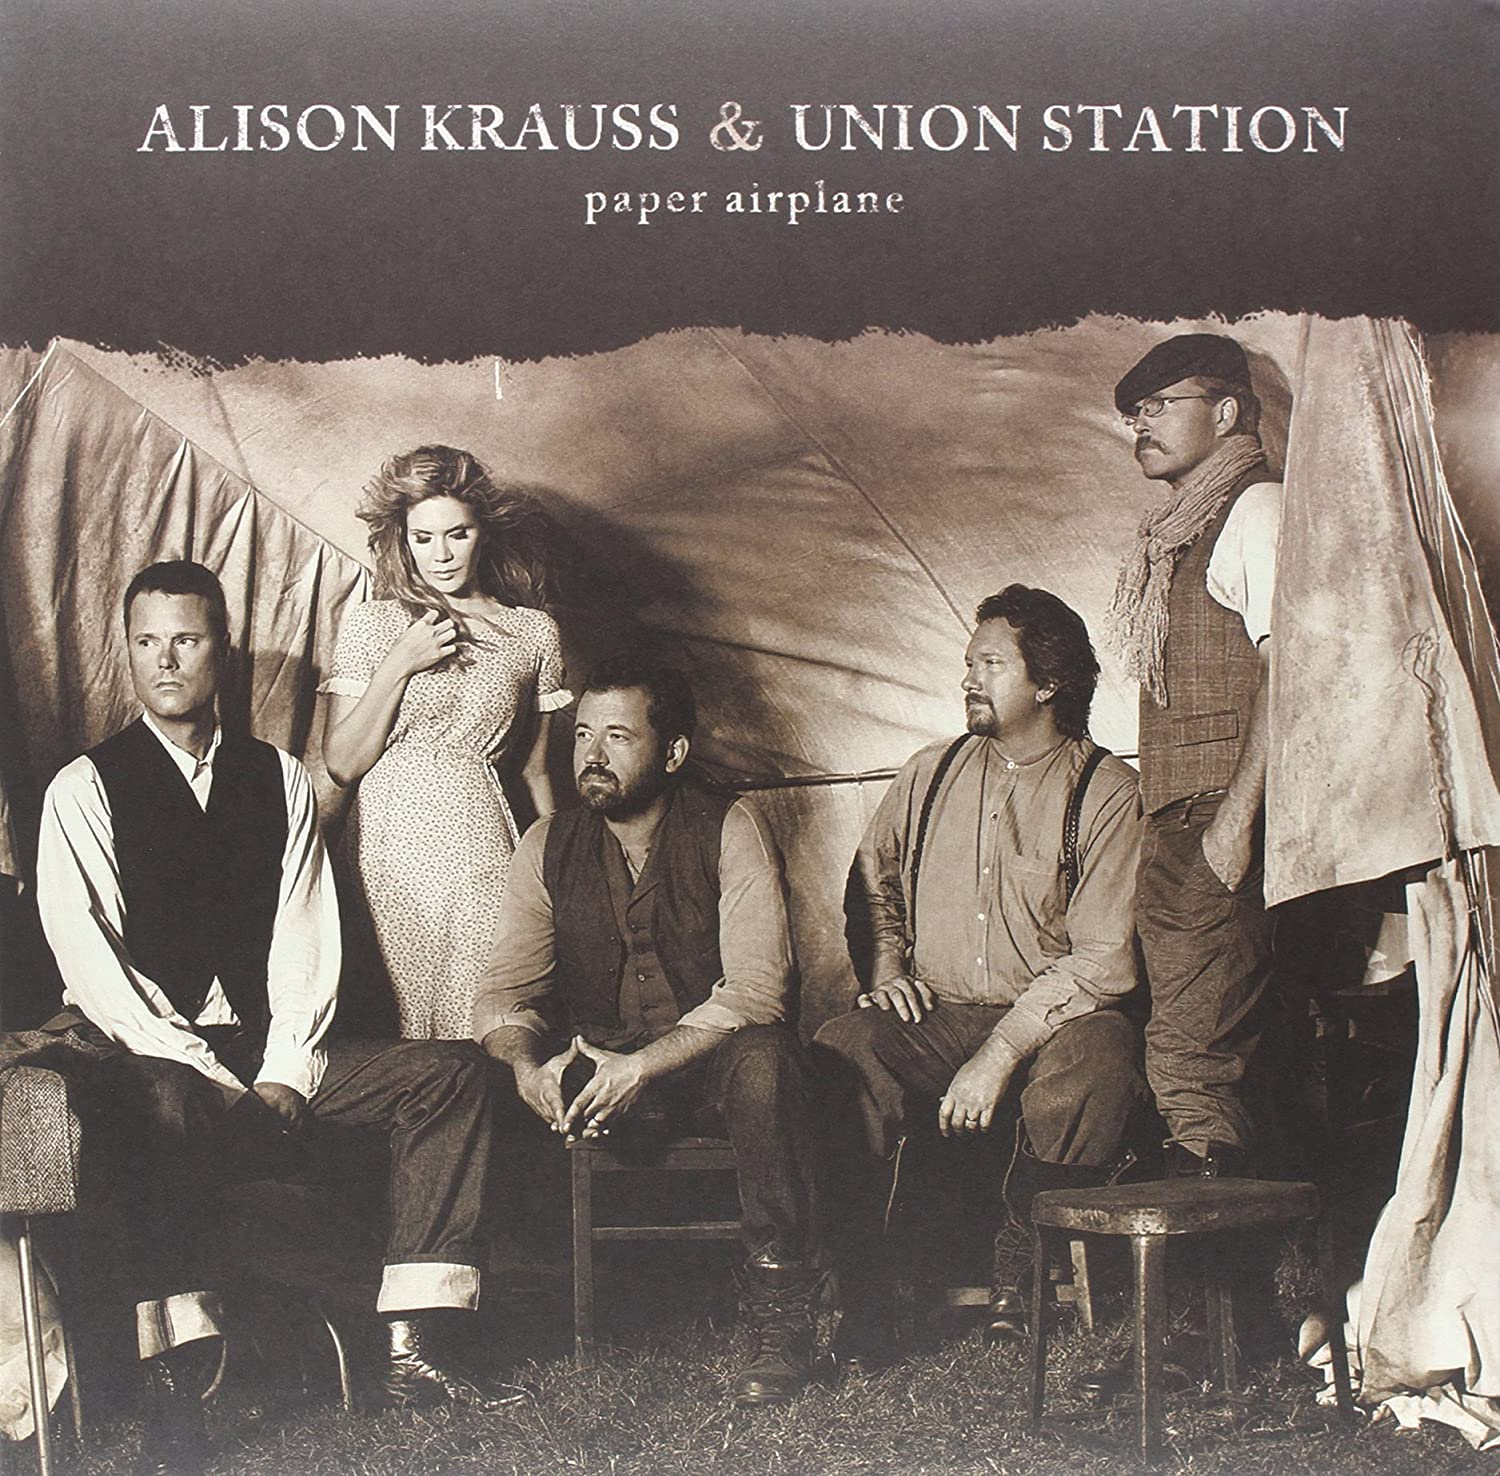 Alison Krauss & Union Station, Paper Airplane